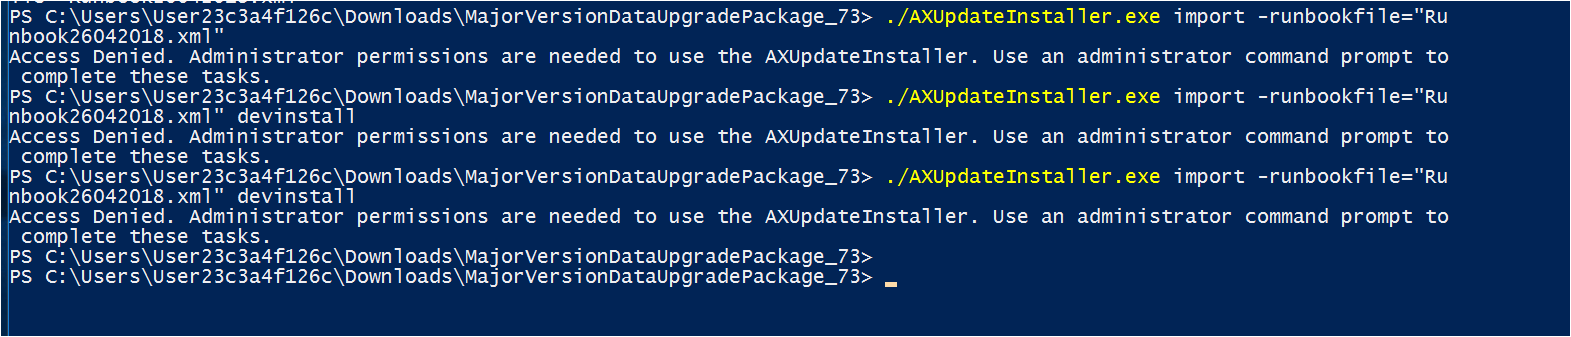 Data Upgrade from AX 2012 R2 to d365FO PU 12 - 7 3 - Dynamics 365